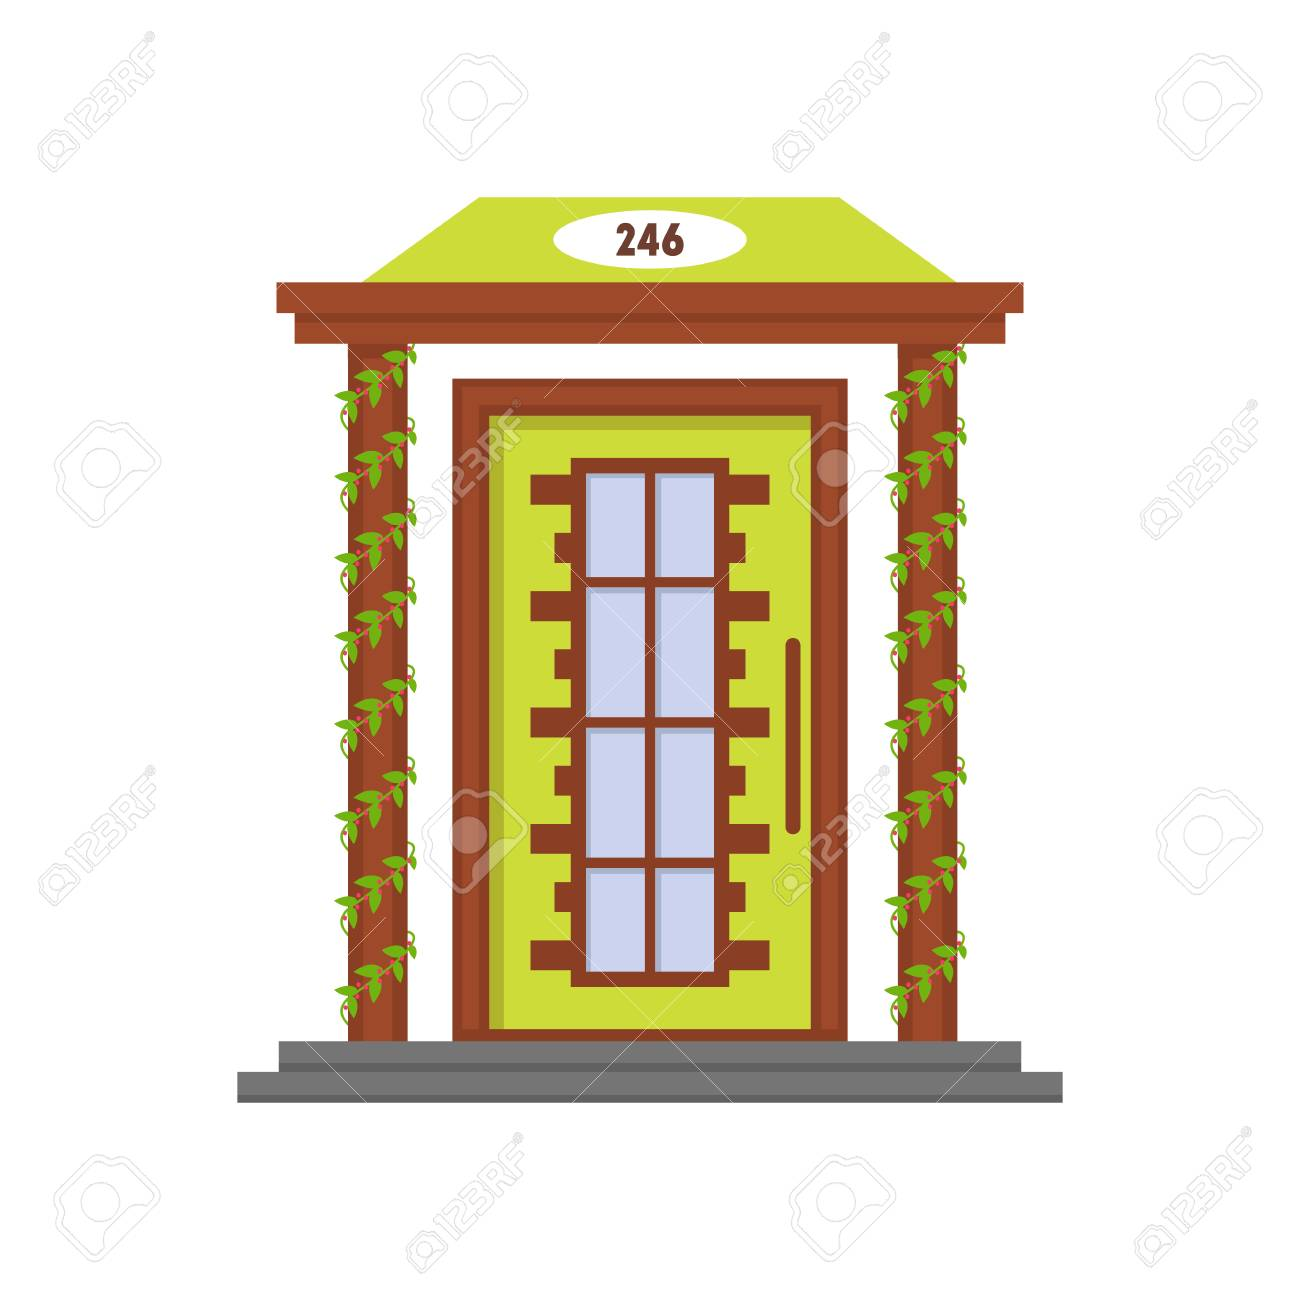 Cartoon Green Front Door Of House Vector Illustration Royalty Free